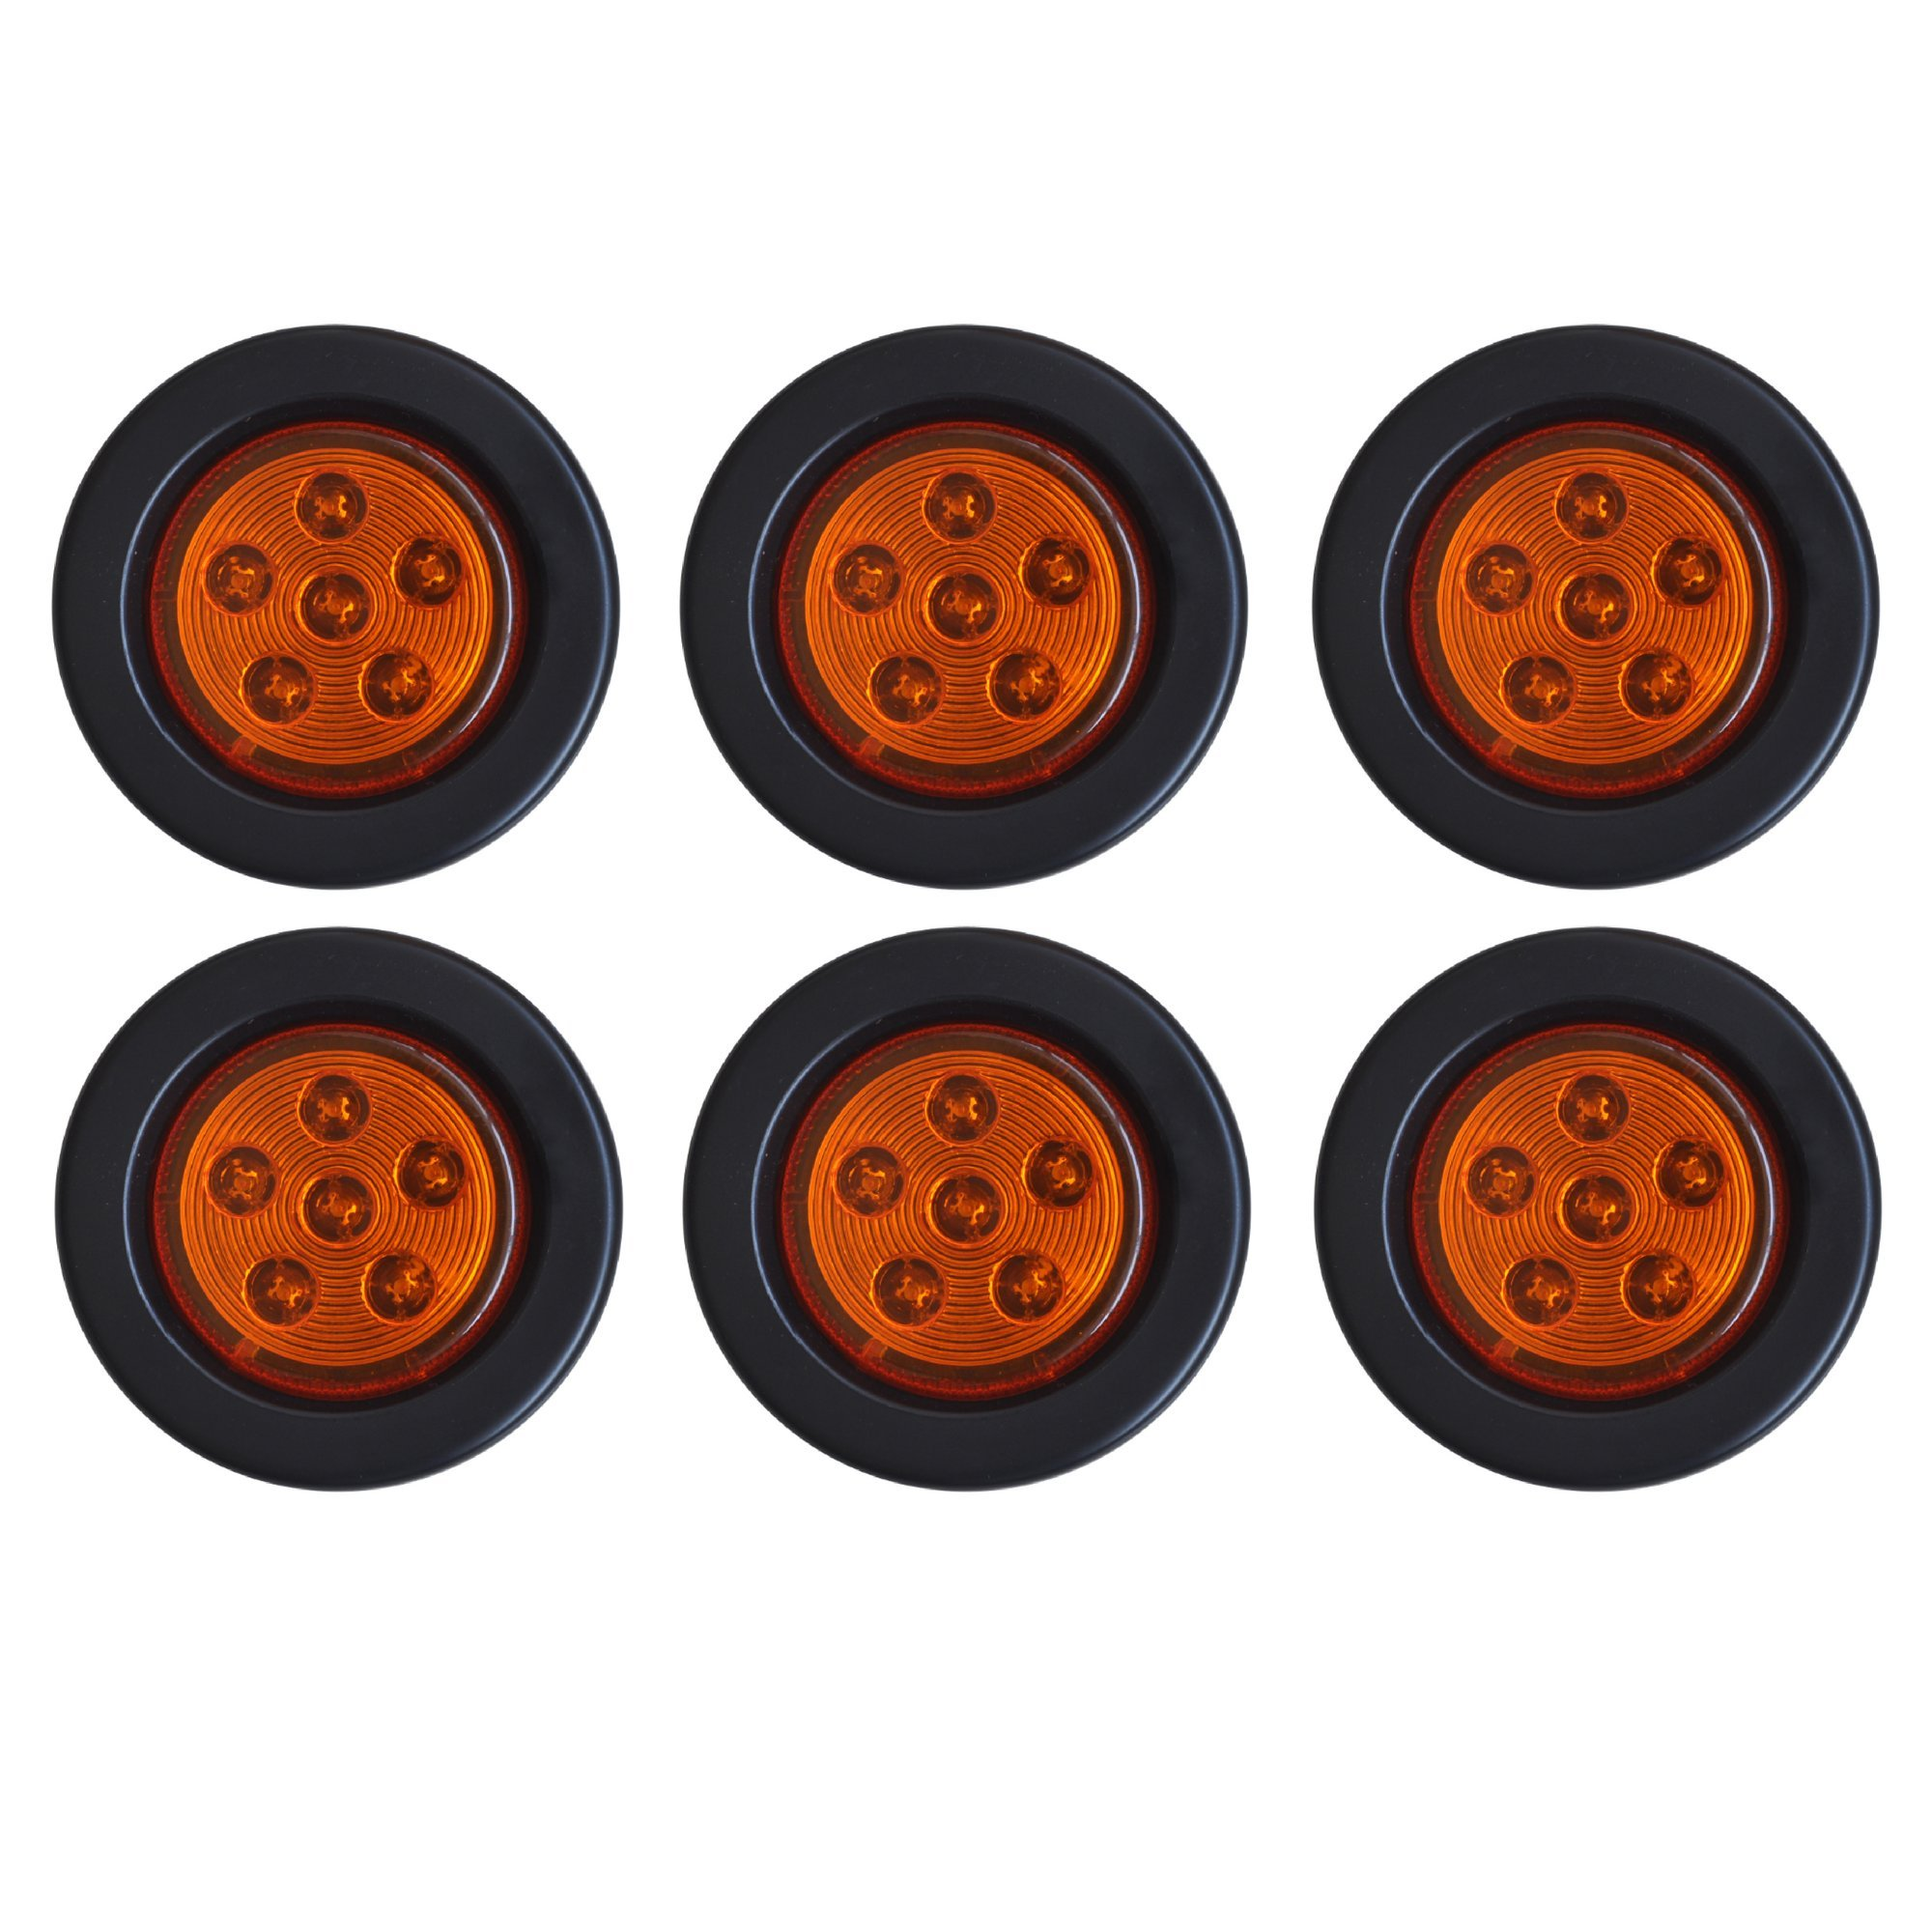 Qty 6-2.5'' Inch Round 6 LED Amber Light Truck Trailer Side Marker Clearance Kit